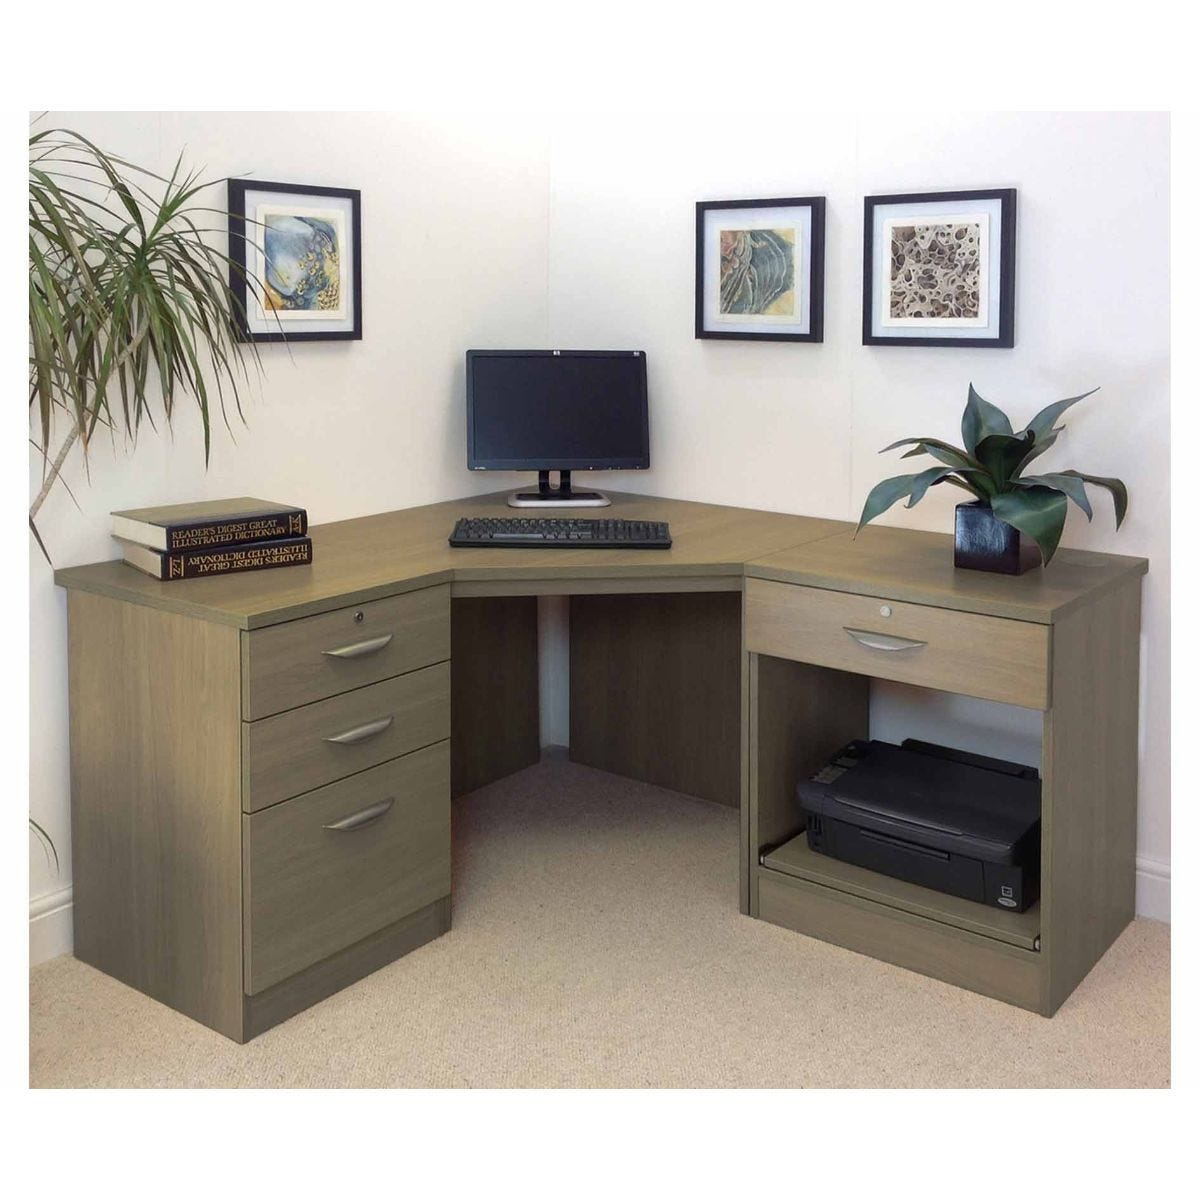 R White Home Office Corner Desk, English Oak Wood Grain